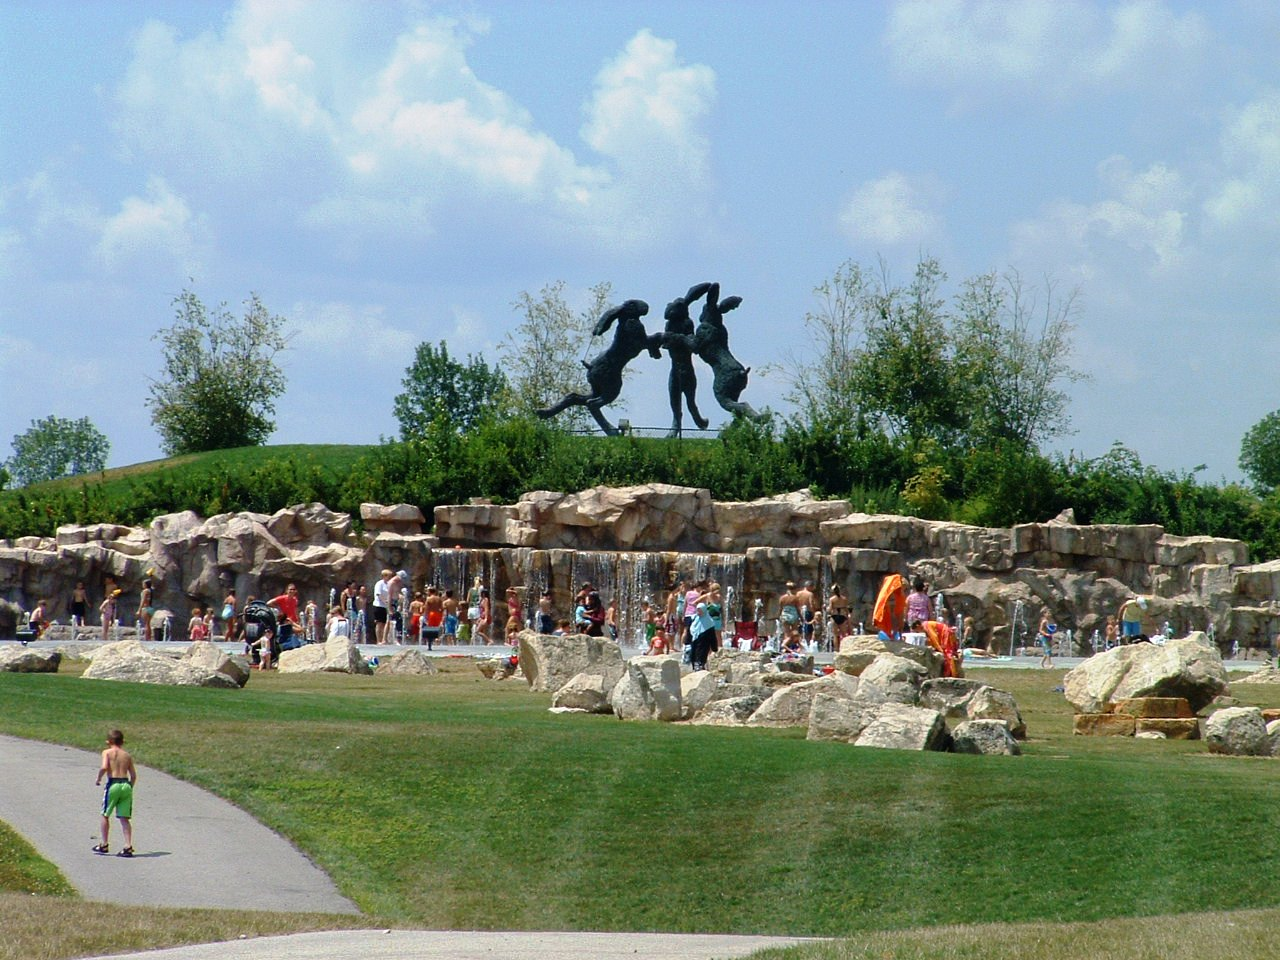 kids playing in a large water fountain in front of large statue of three dancing hairs